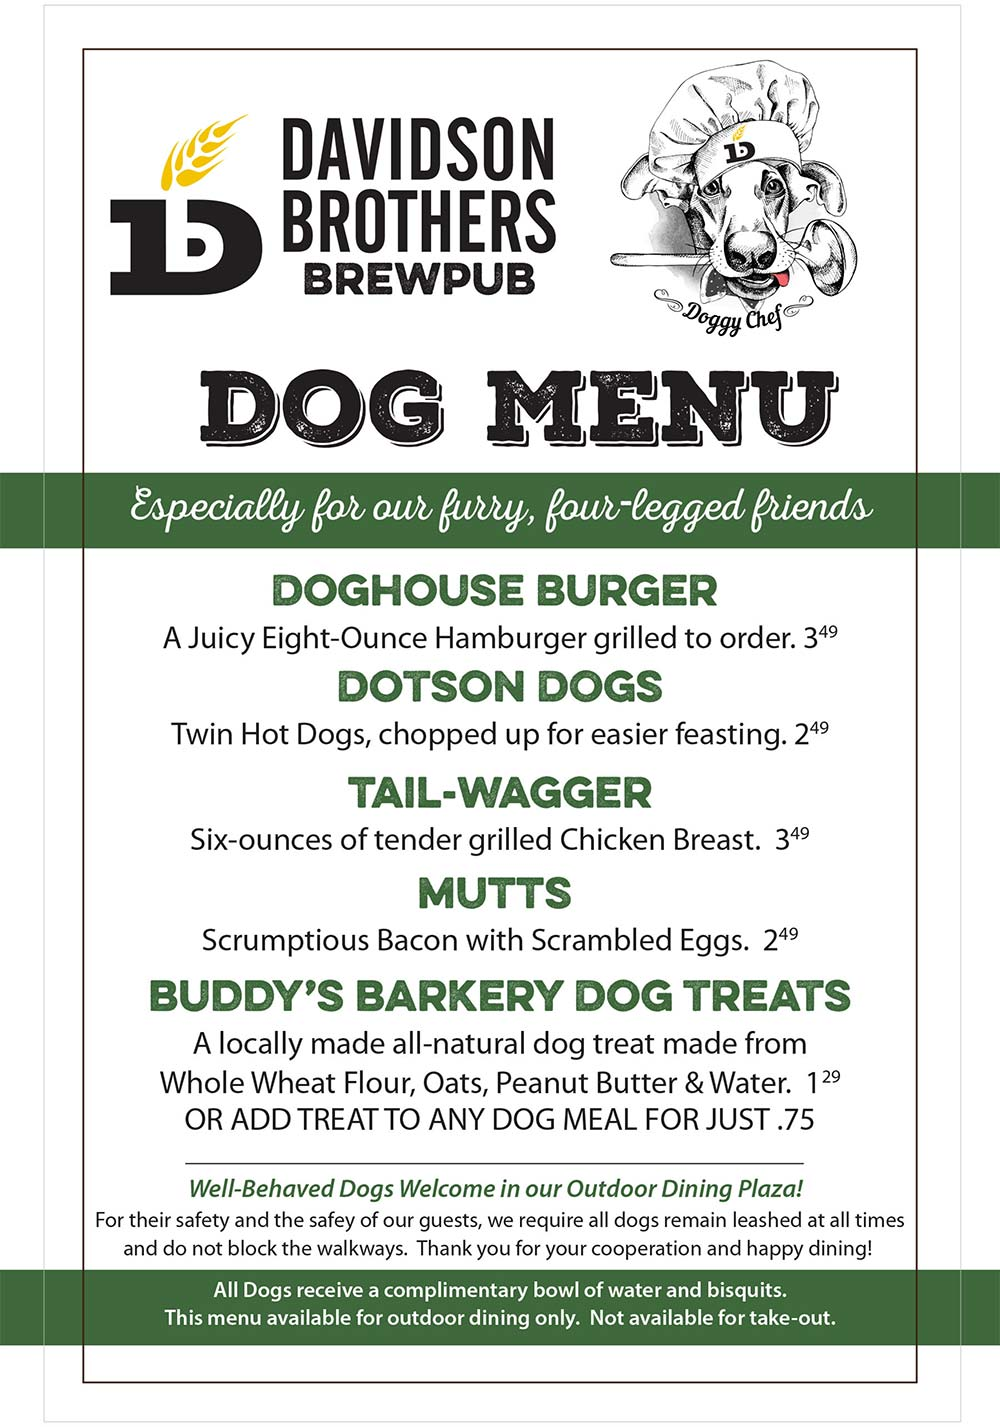 Davidson Brothers Dog Menu